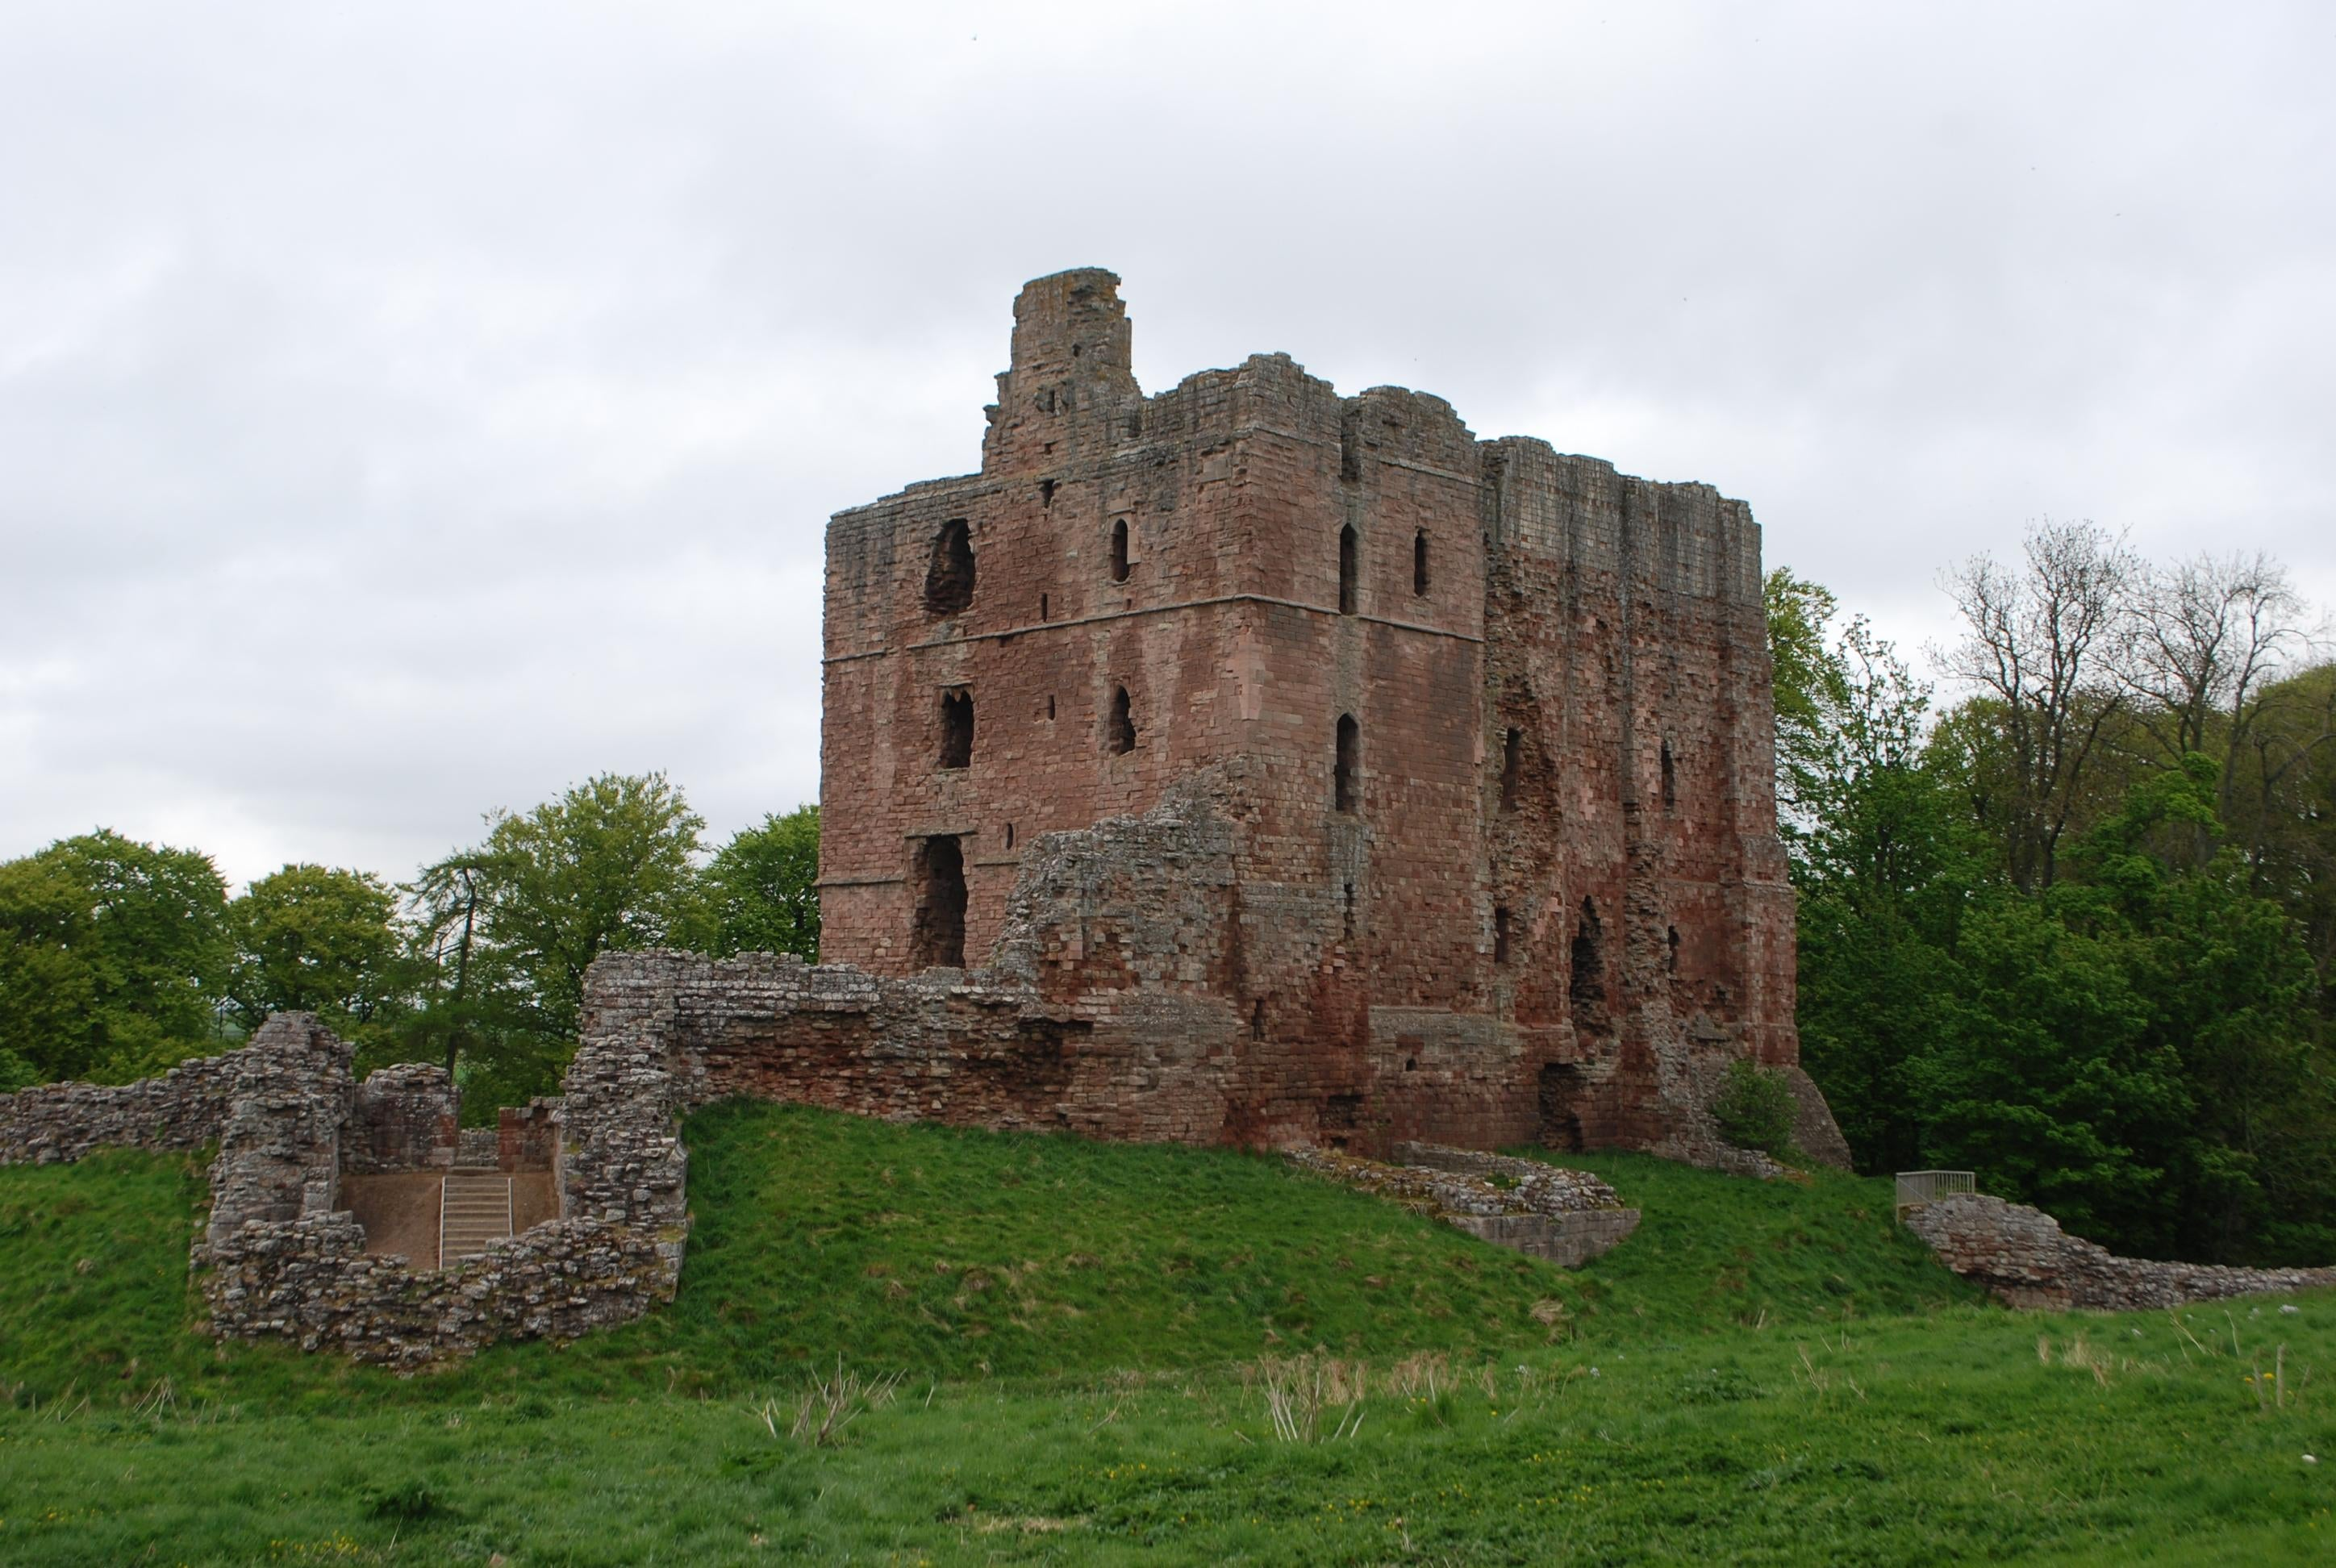 Ruinas en Berwick-upon-Tweed